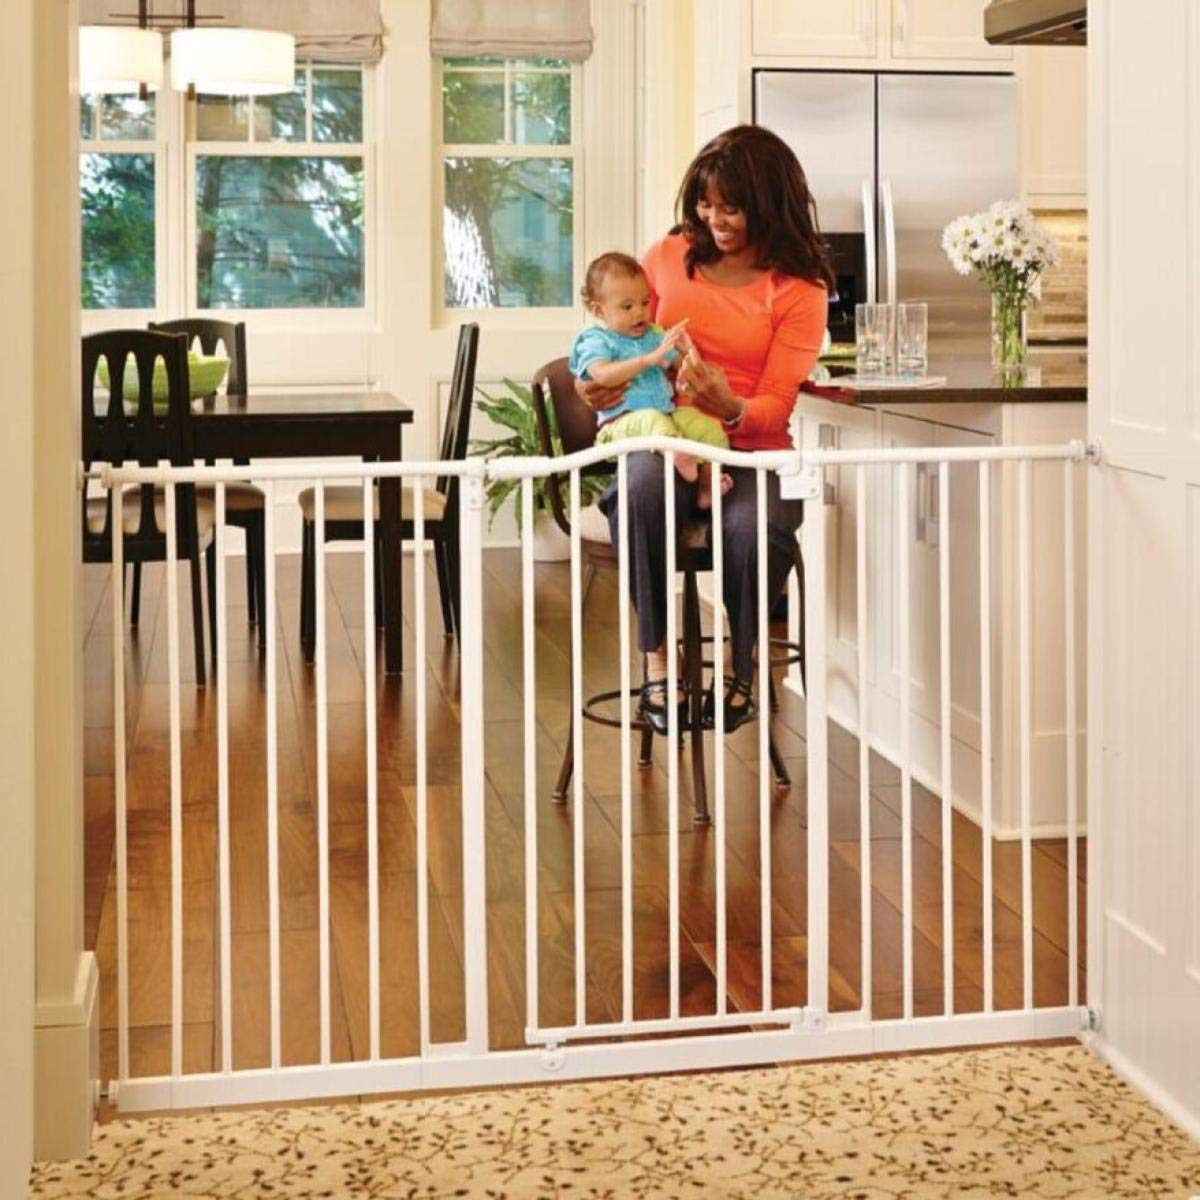 North States 46.8 Wide Tall Wide Portico Arch Baby Gate Decorative heavy-duty metal gate that s both extra wide and extra tall. Pressure mount. Fits 28.2 -46.8 wide 36 tall, Soft White